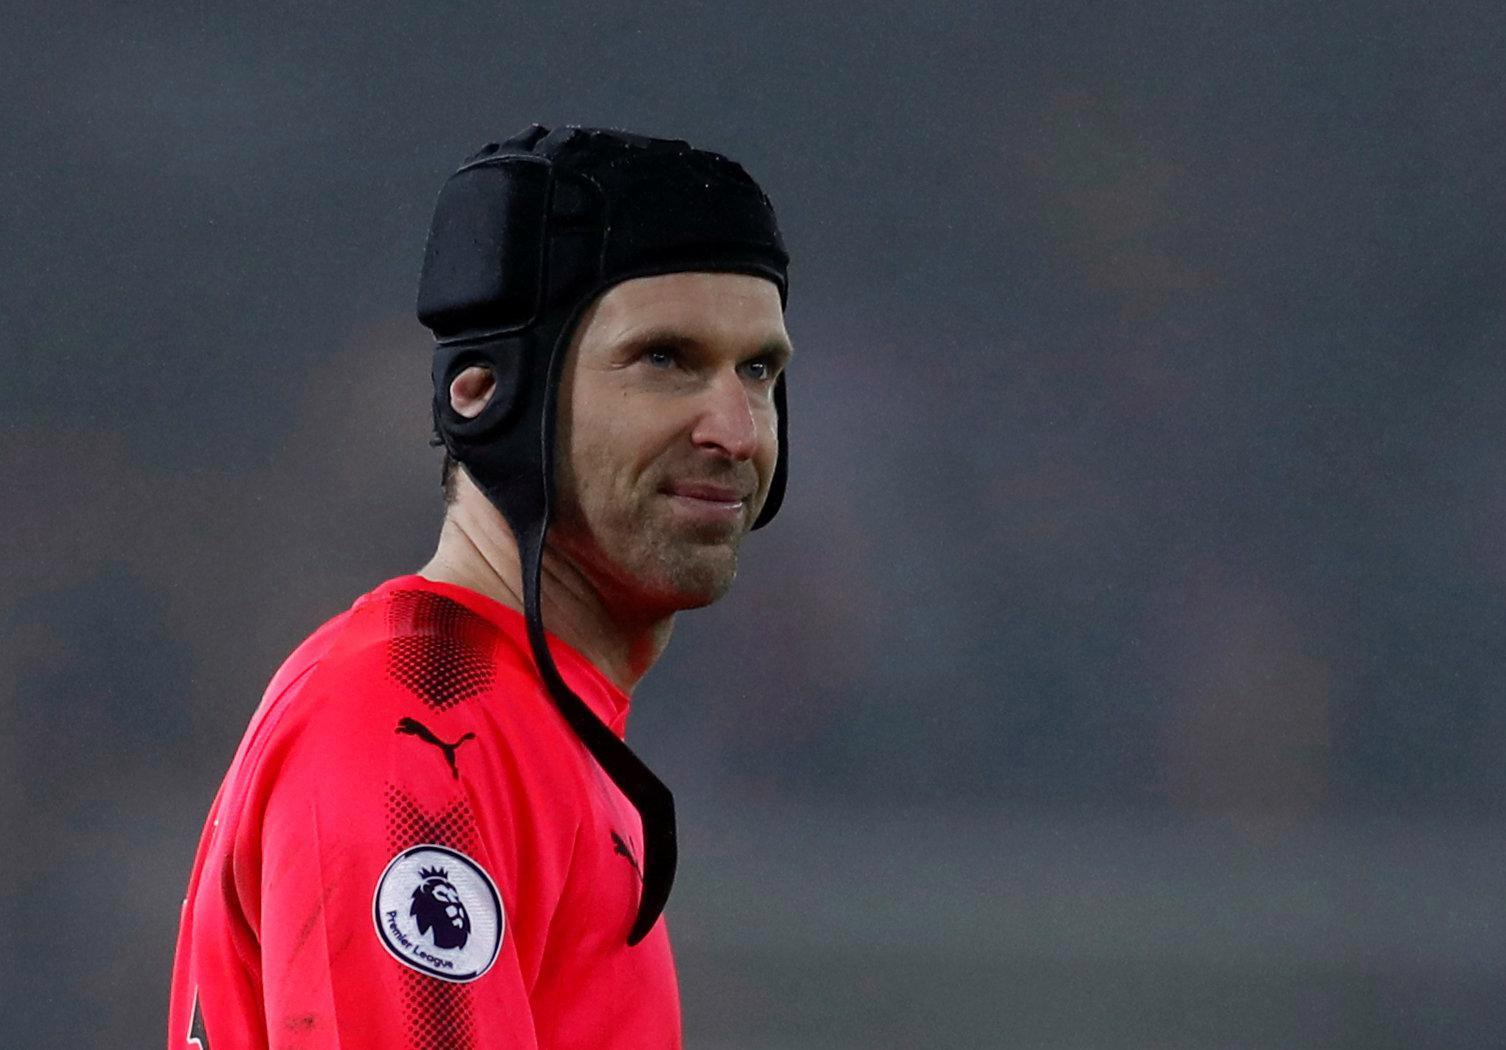 Cech has worn a skull cap for over a decade